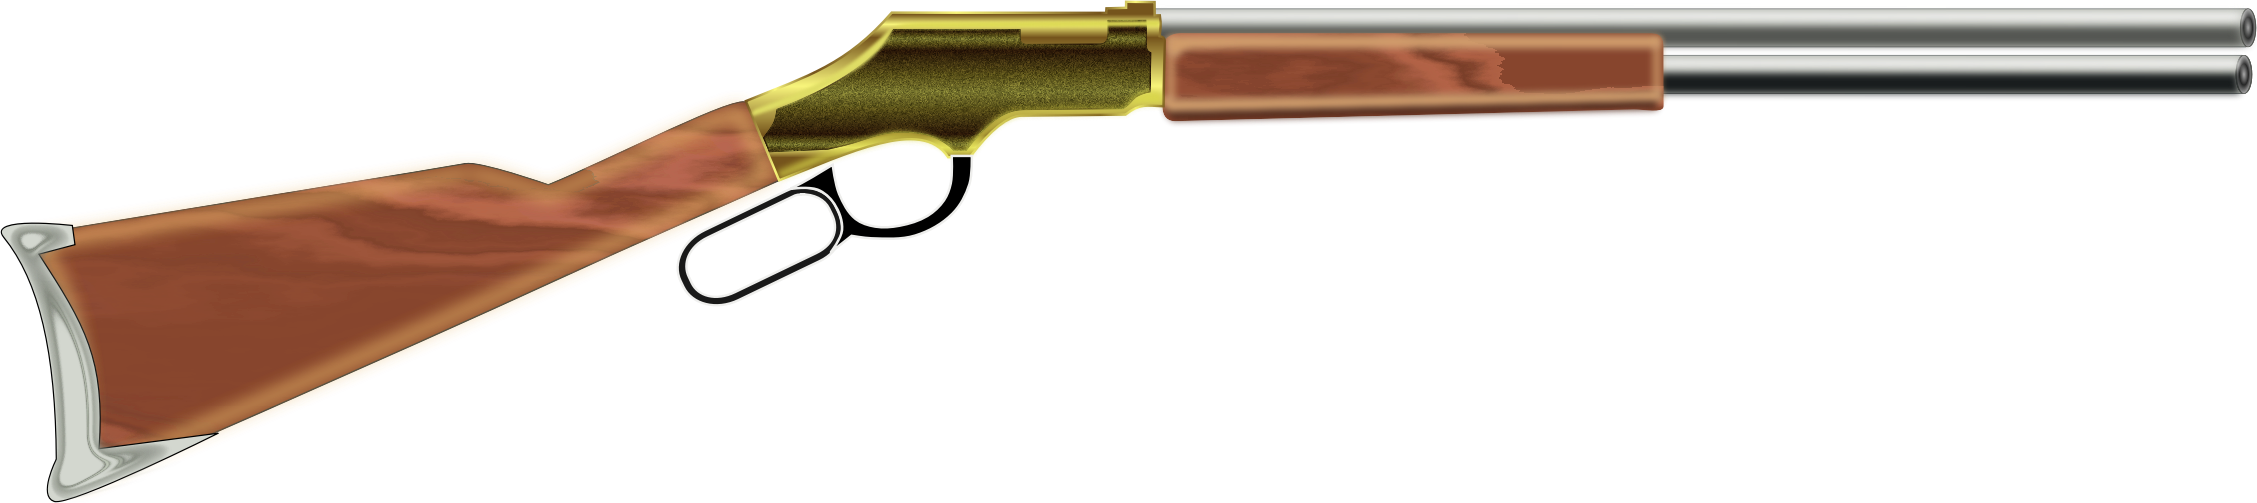 Shotgun Template by MrSmiles